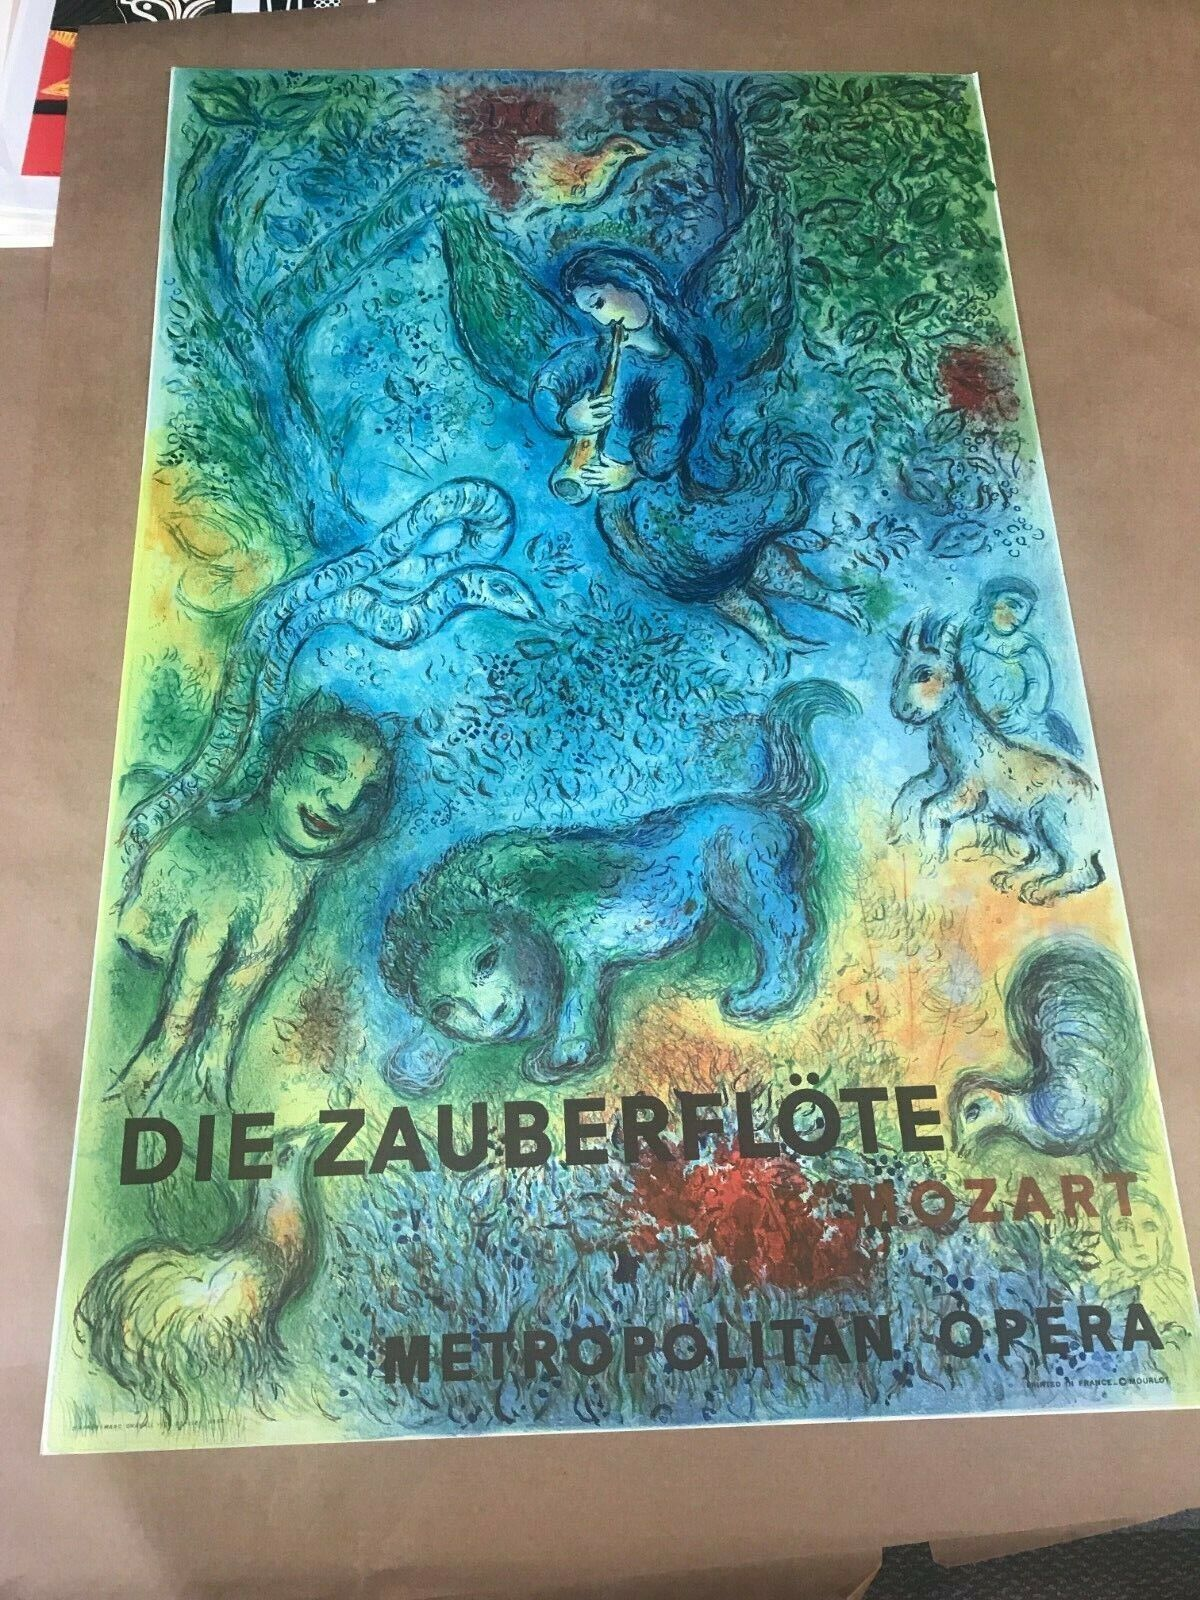 Marc Chagall, Metropolitan Opera, The Magic Flute, Offset Lithograph Print - $5.99